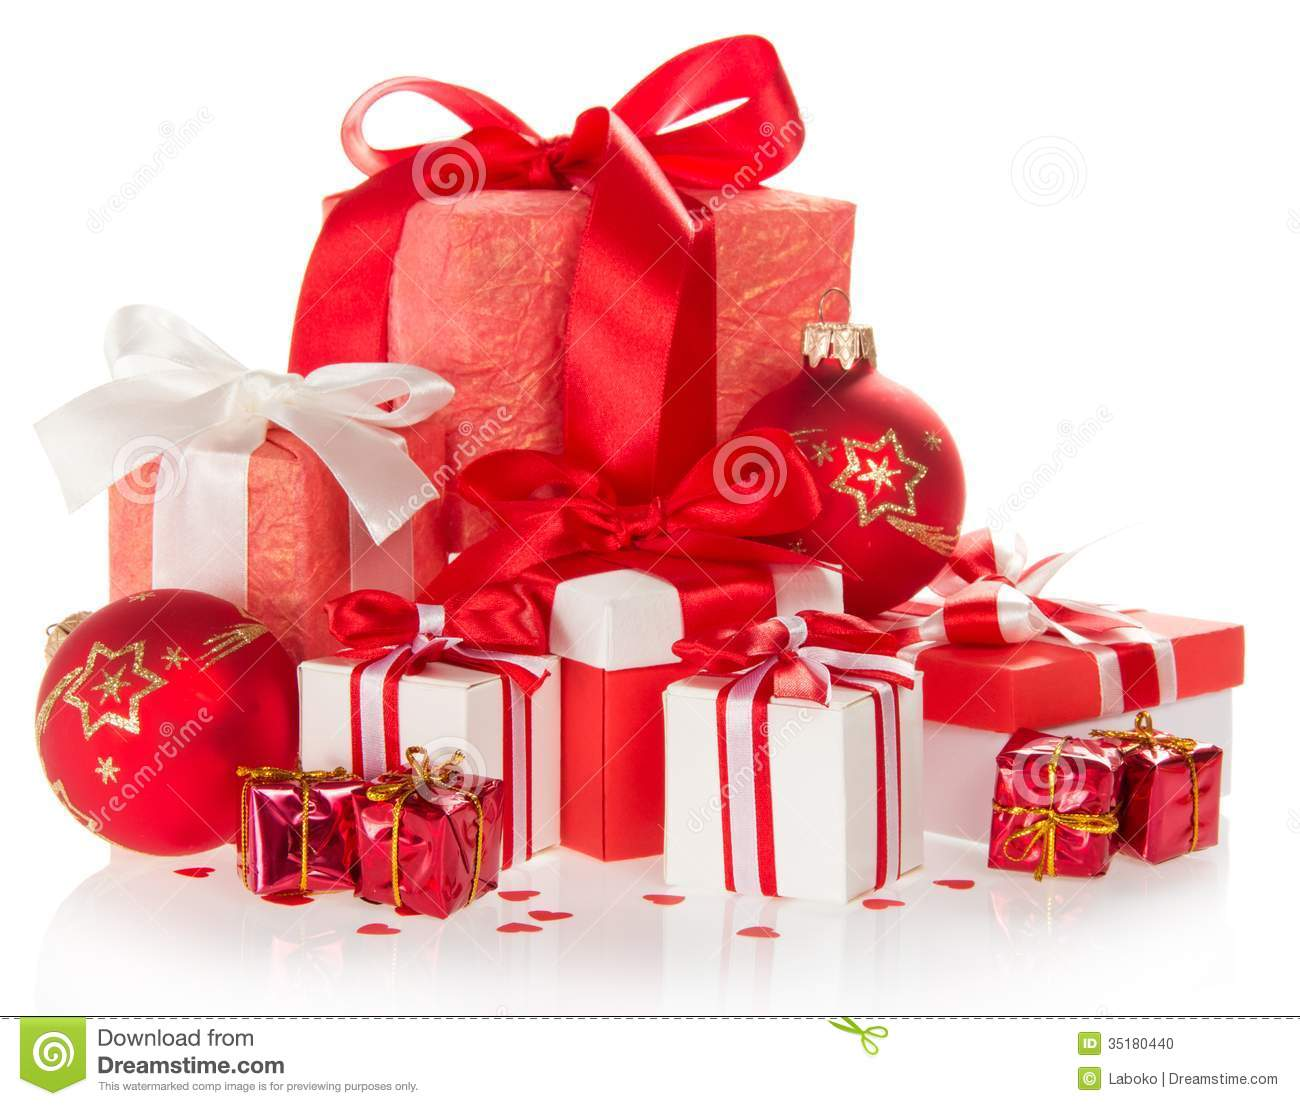 Christmas gifts and toys stock photo. Image of composition ...